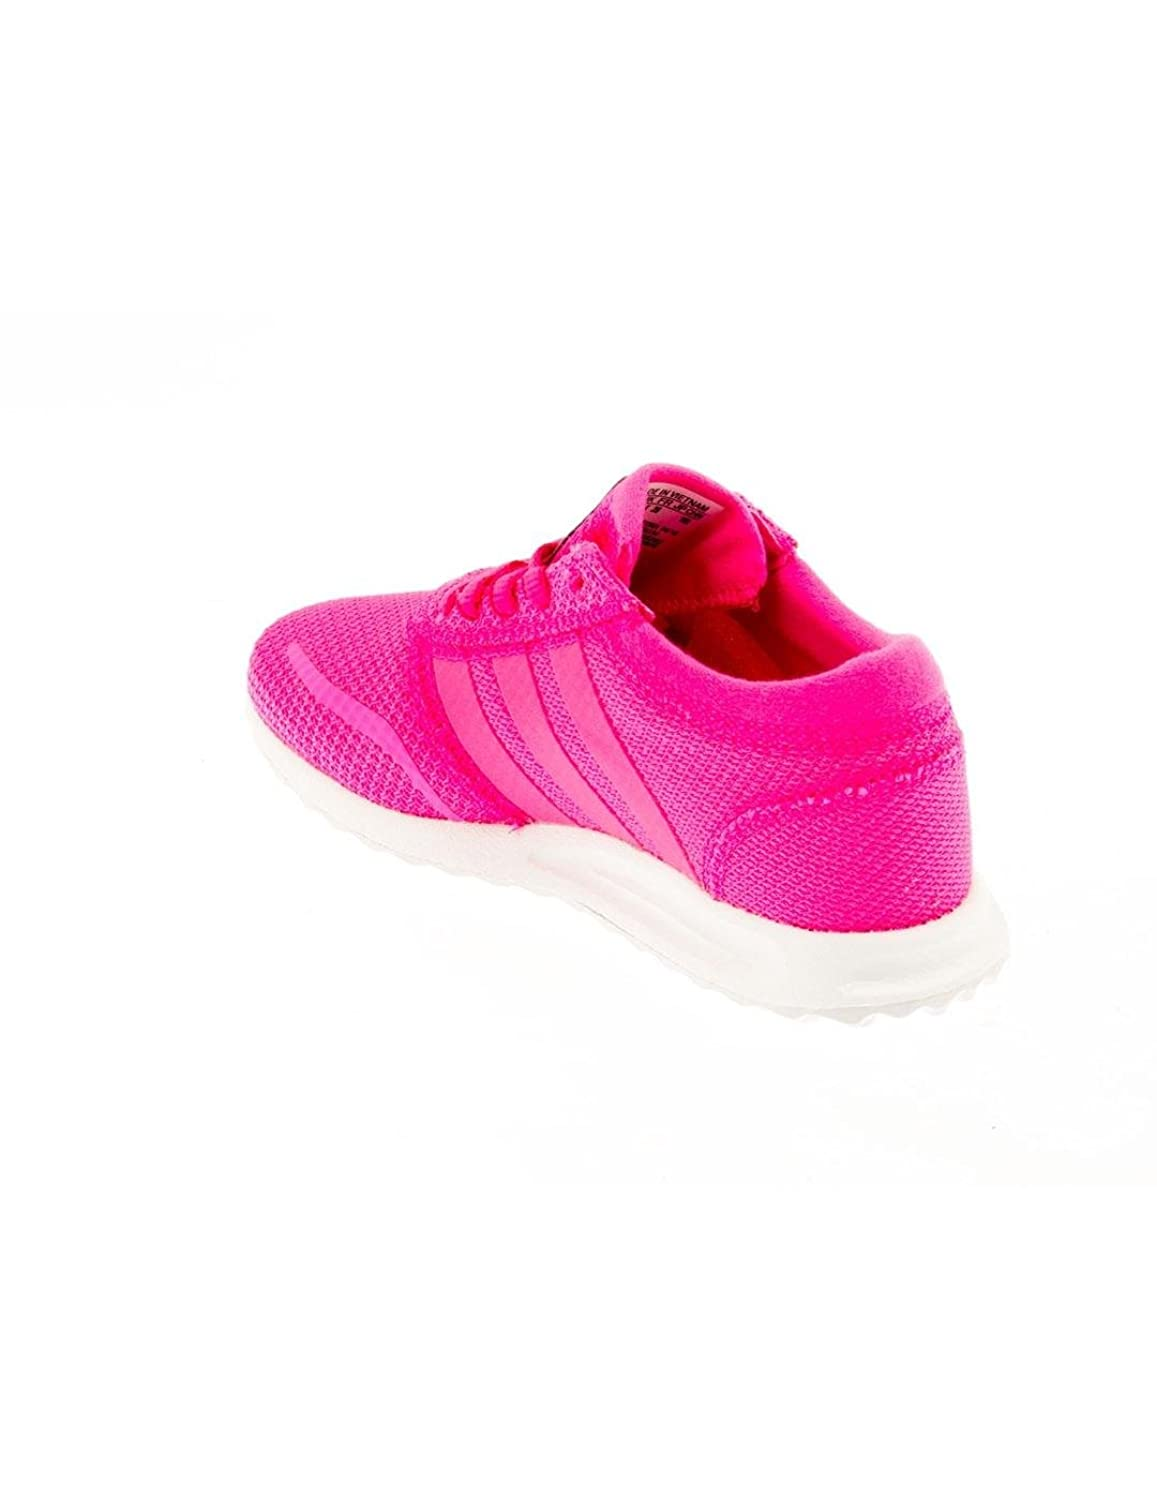 adidas Originals children Girls Los Angeles Trainers In Pink: Amazon.co.uk:  Shoes & Bags